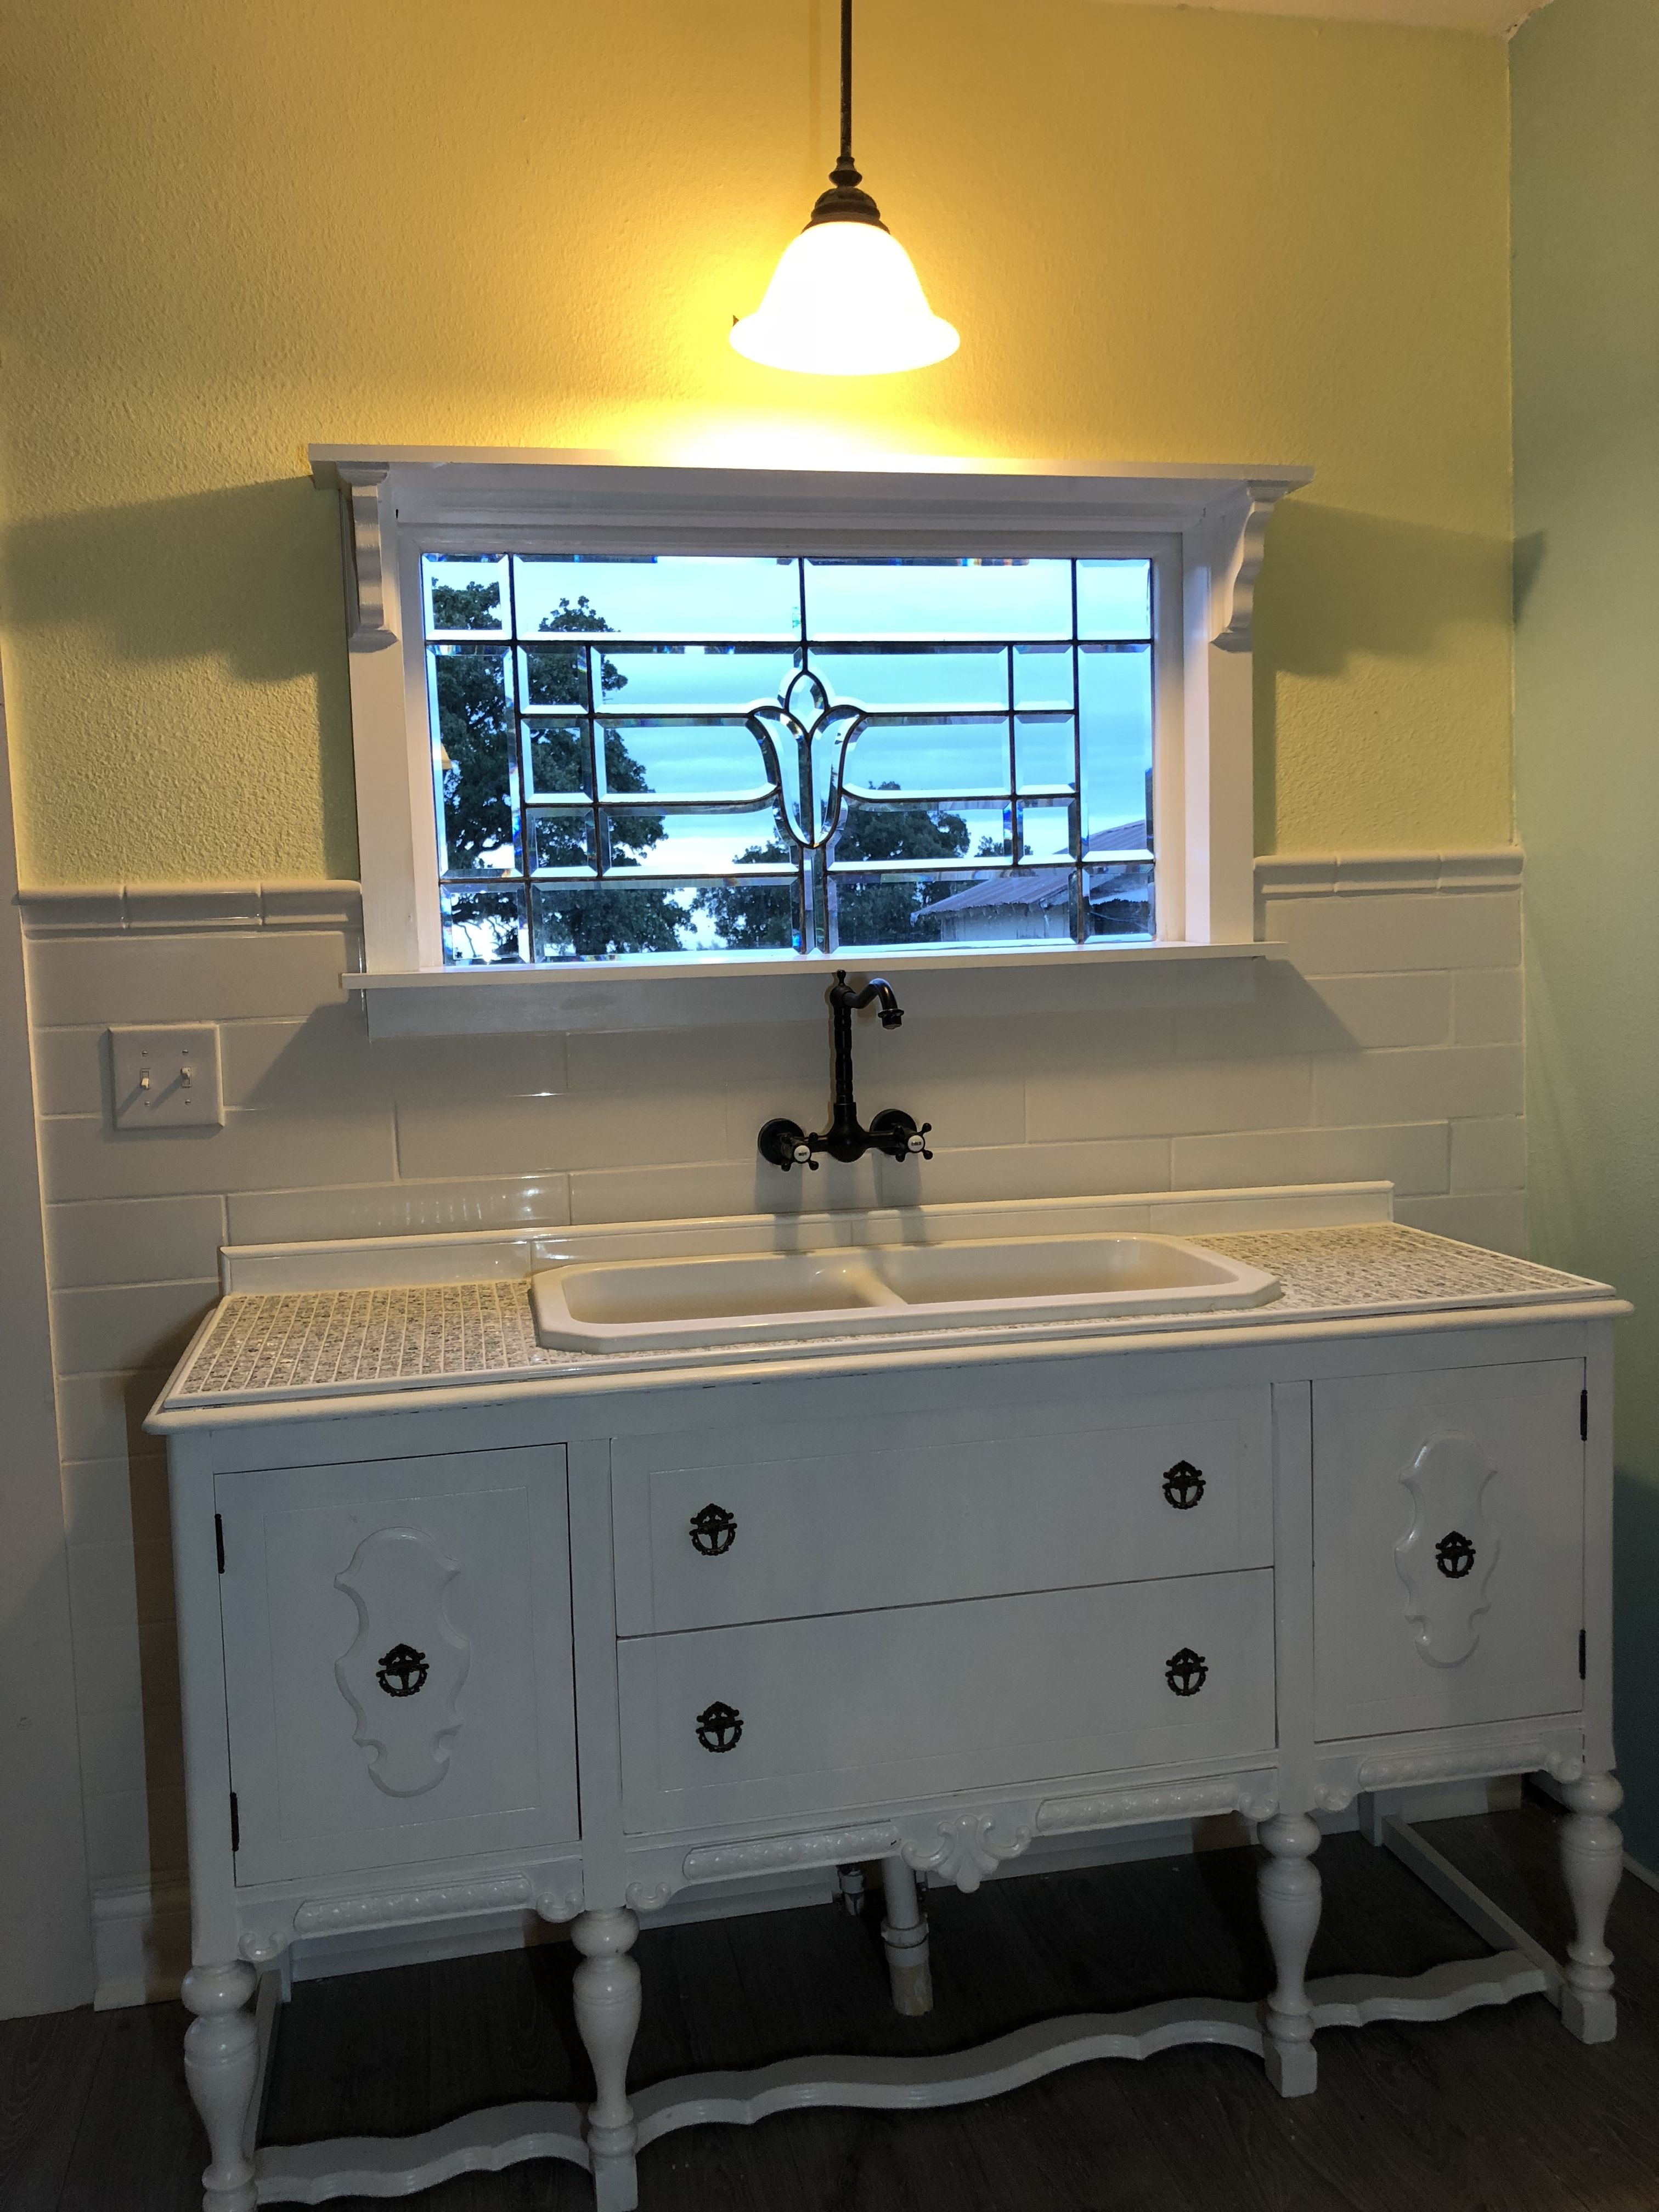 Buffet Turned Into A Kitchen Sink Kitchen Island With Sink New